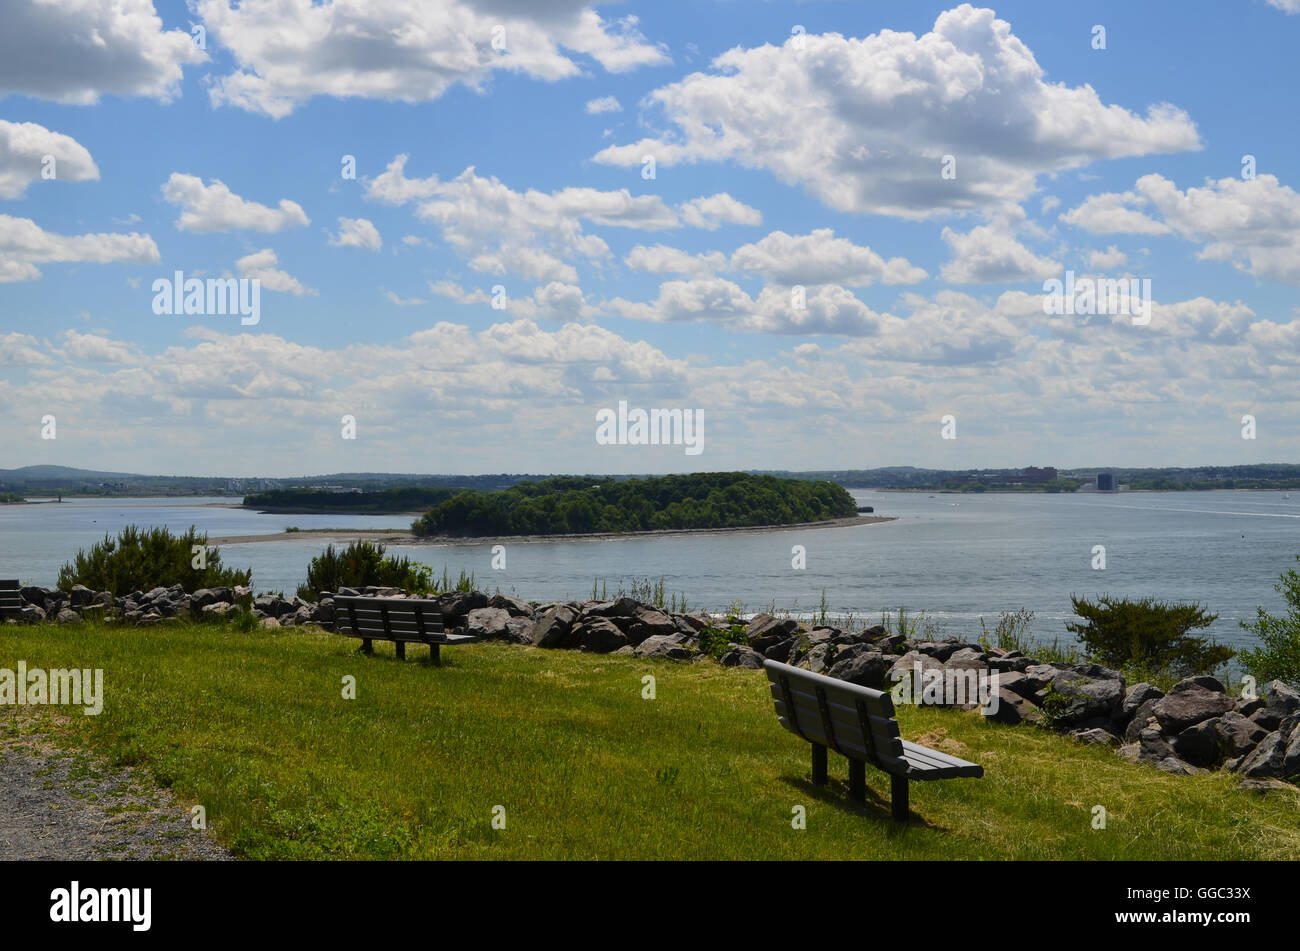 Benches facing Boston Harbor on Spectacle Island. - Stock Image